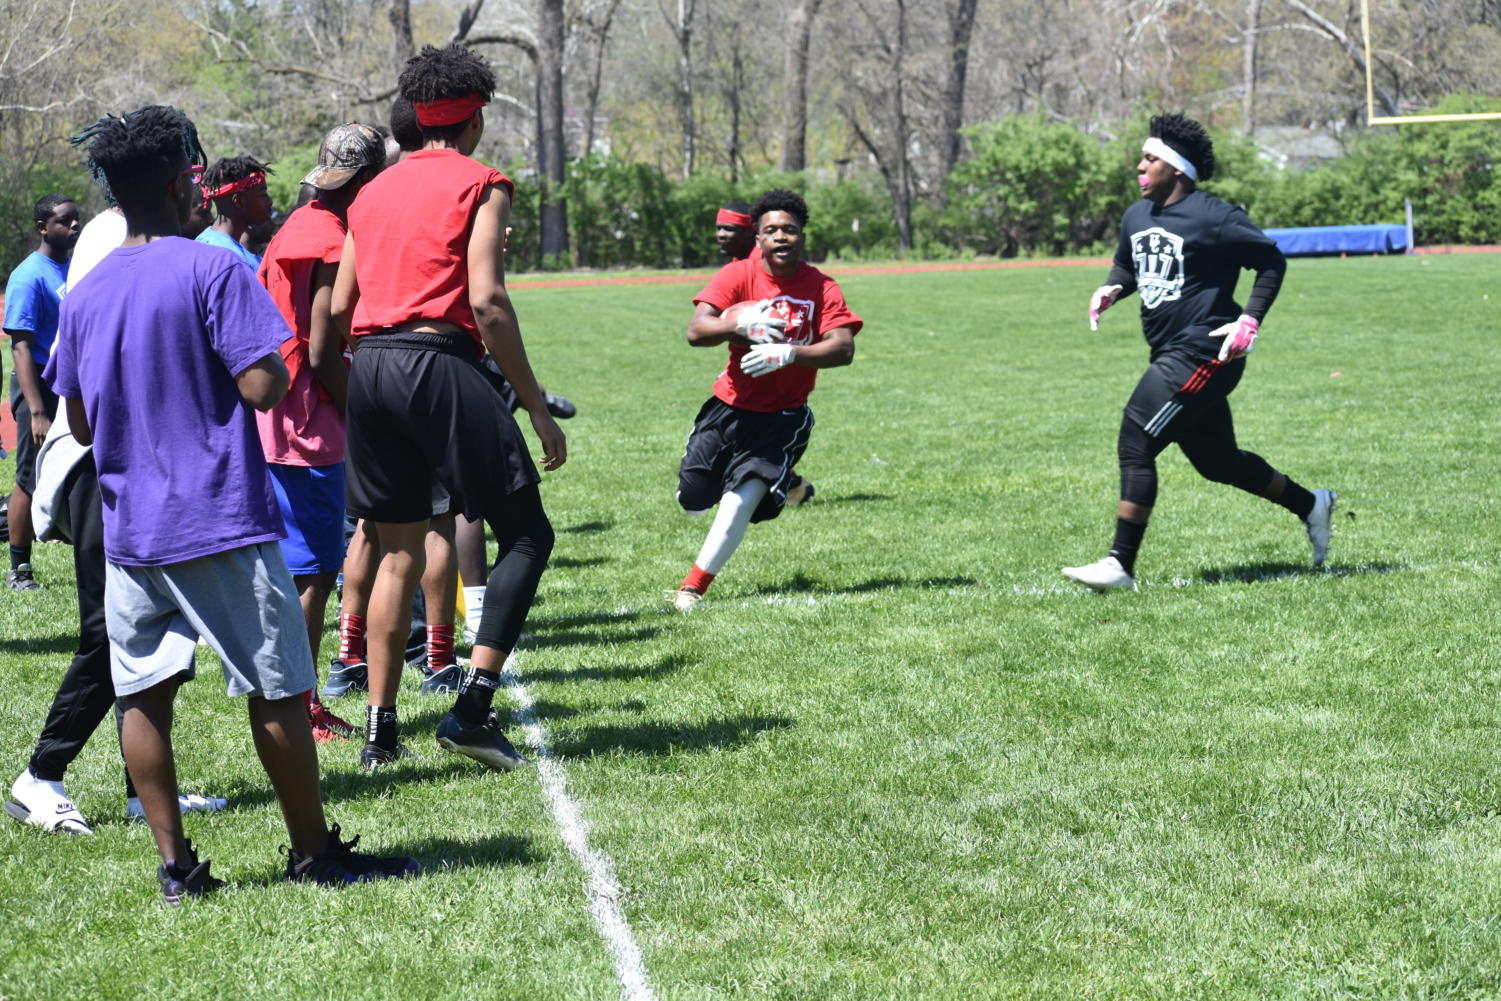 Givion Crawford, junior, makes a run up the sideline as the juniors played the seniors in flag football on Apr. 27.